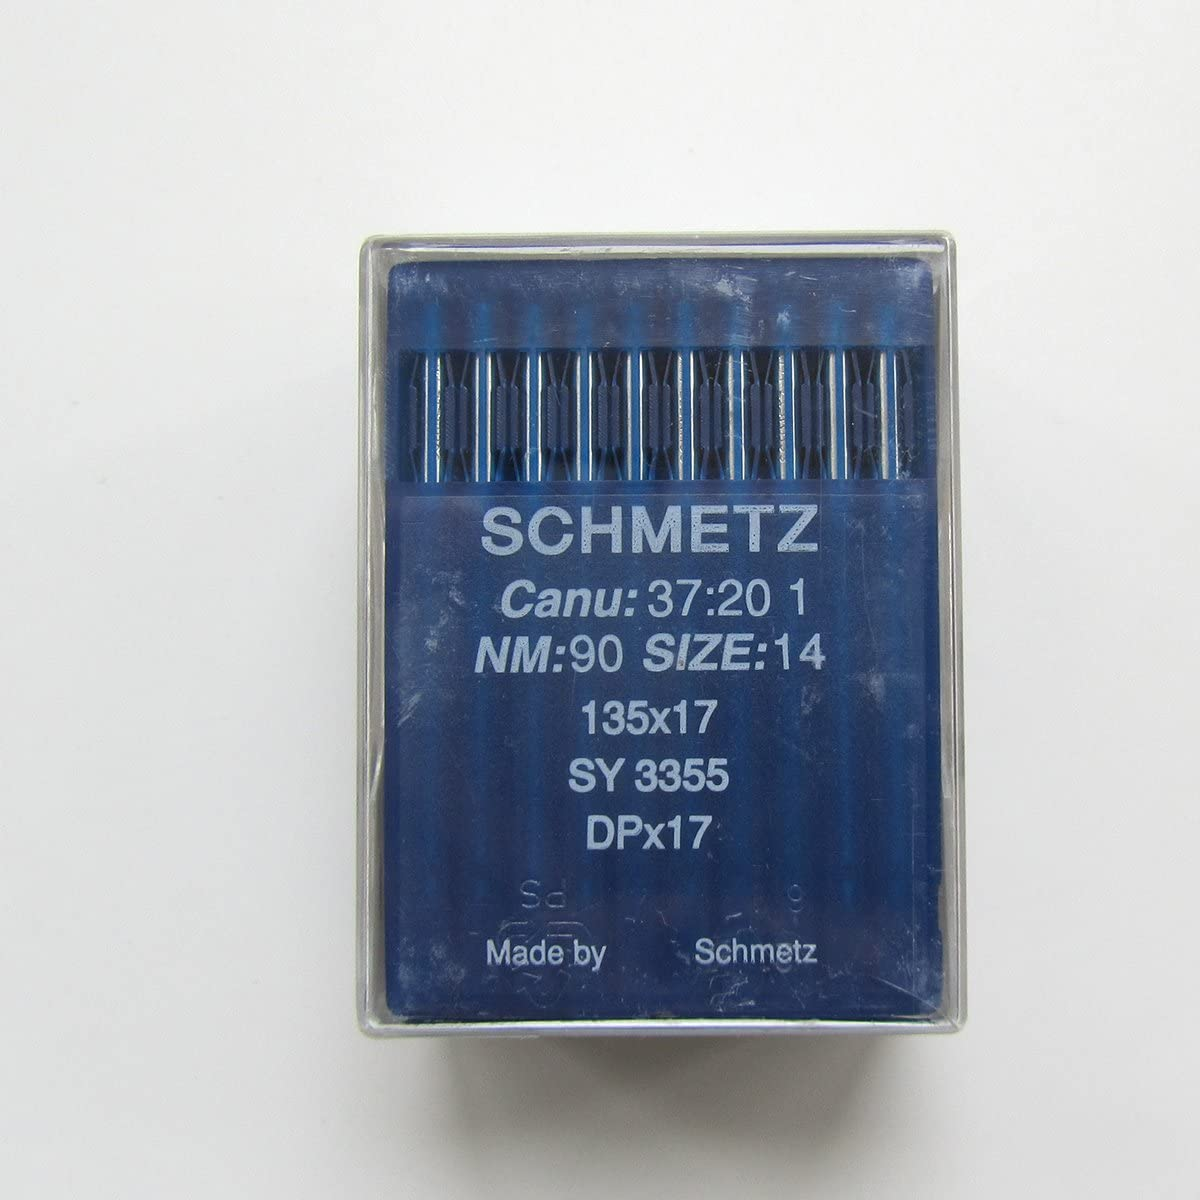 125 INDUSTRIAL SEWING MACHINE NEEDLES DPX17 SY3355 10 SCHMETZ  135X17 SIZE#20